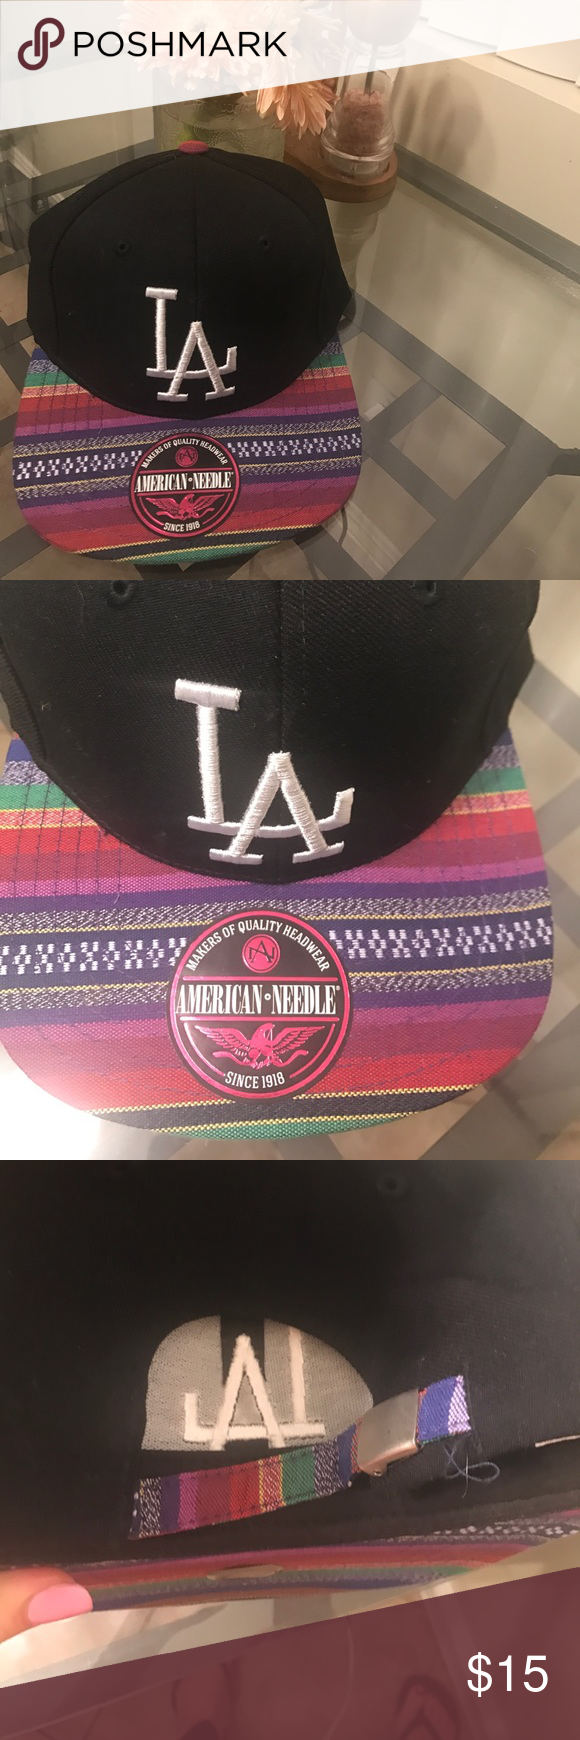 La Hat Urban Outfitters Accessories Things To Sell Urban Outfitters